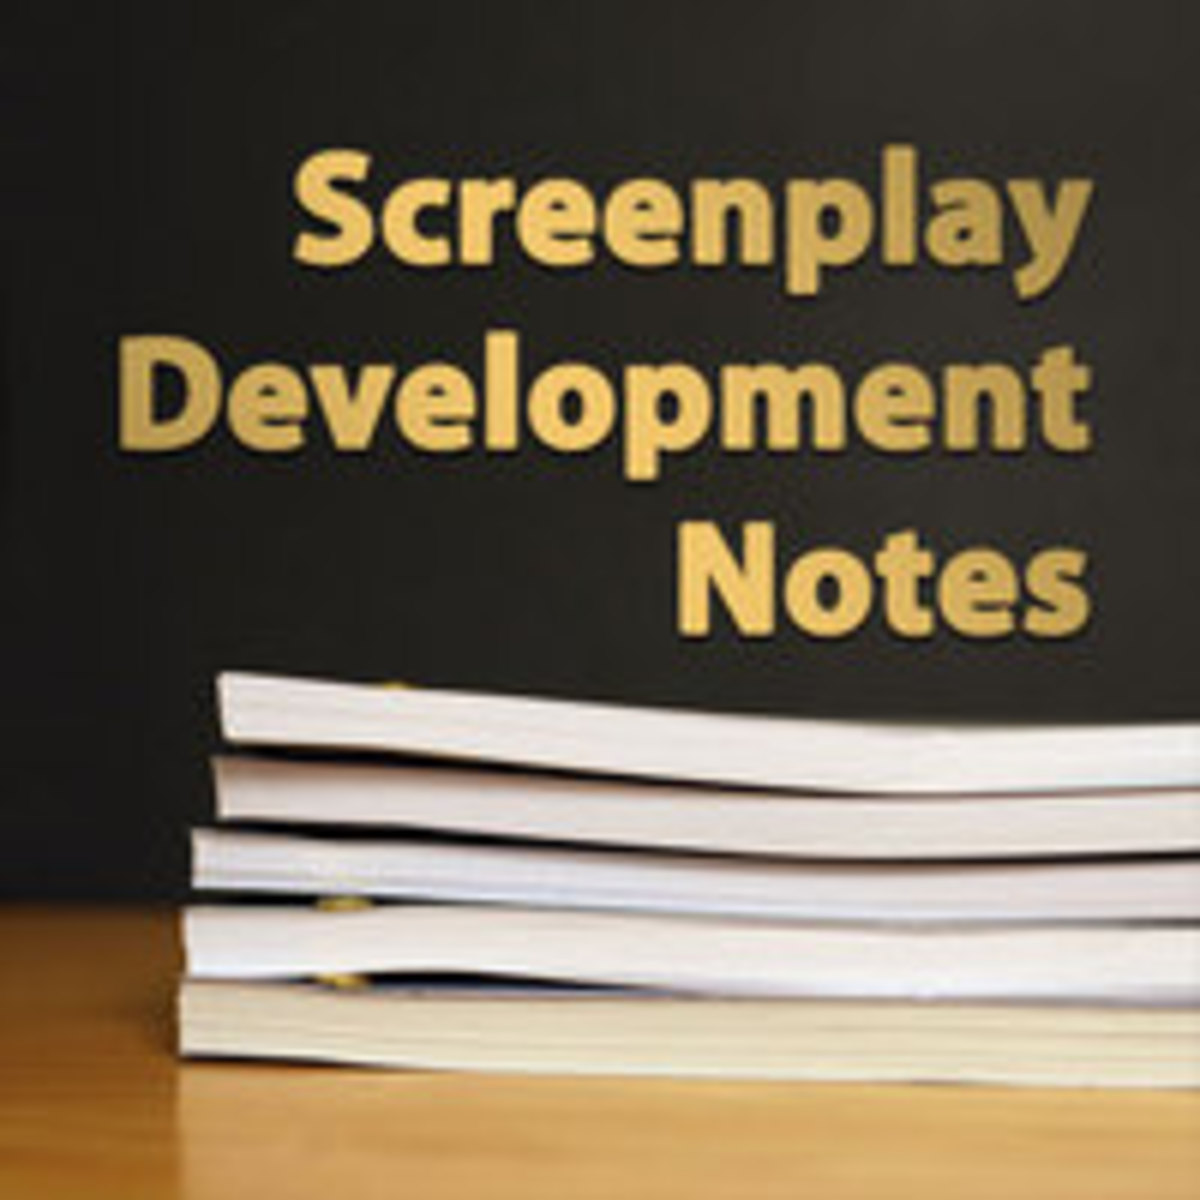 screenplay-development-notes_small-1